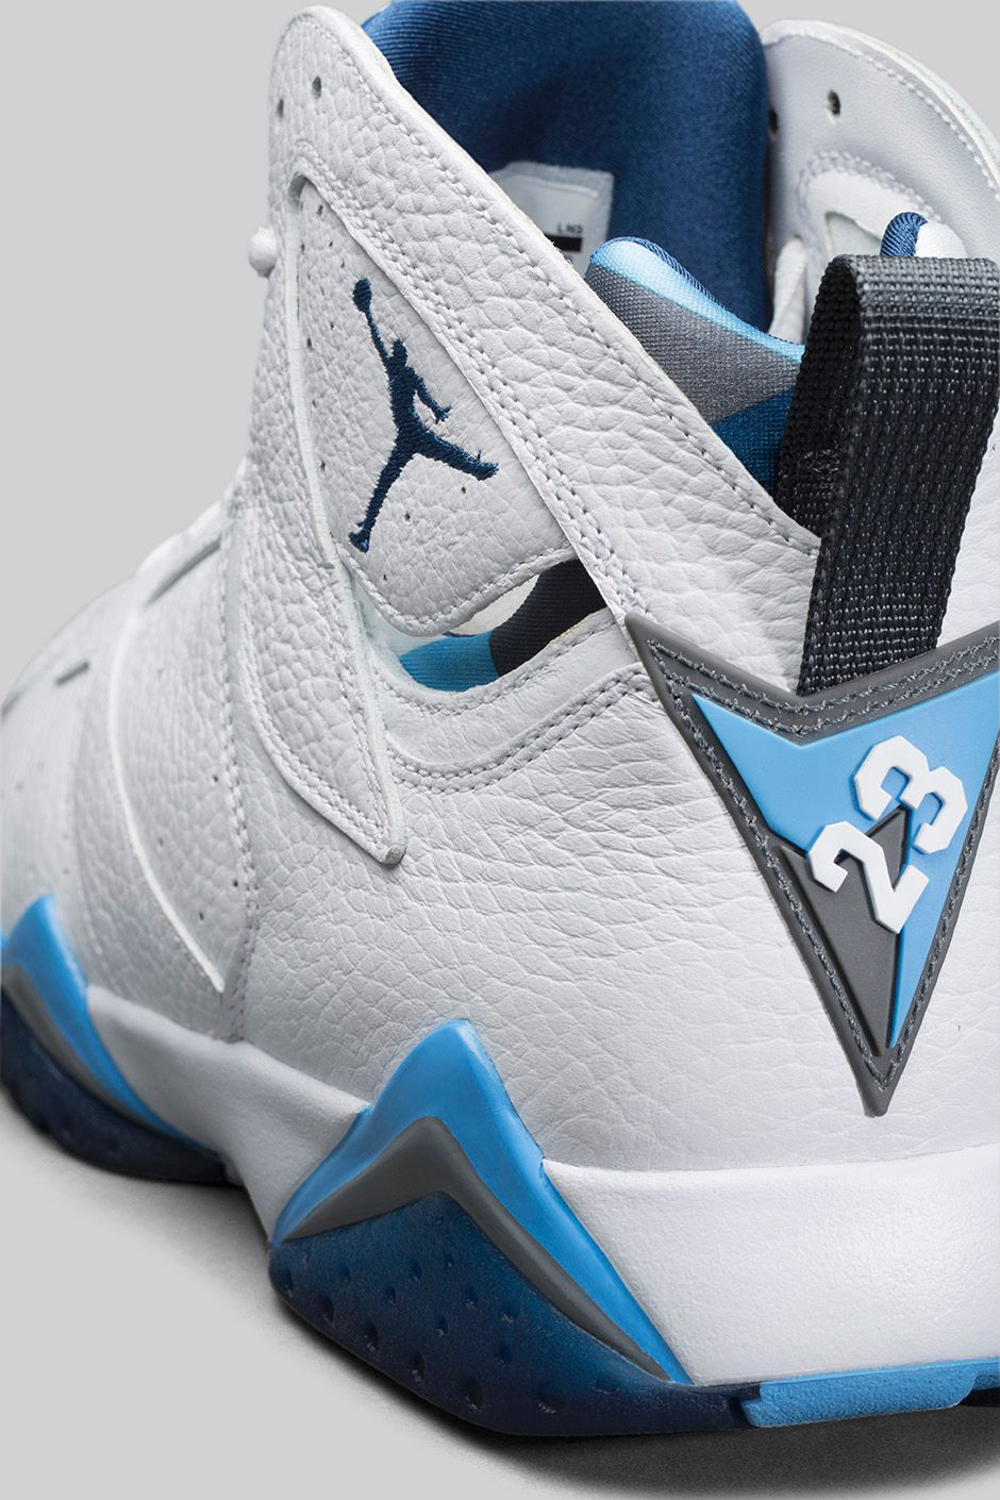 Air Jordan 7 'French Blue' Retro 2015 (1)